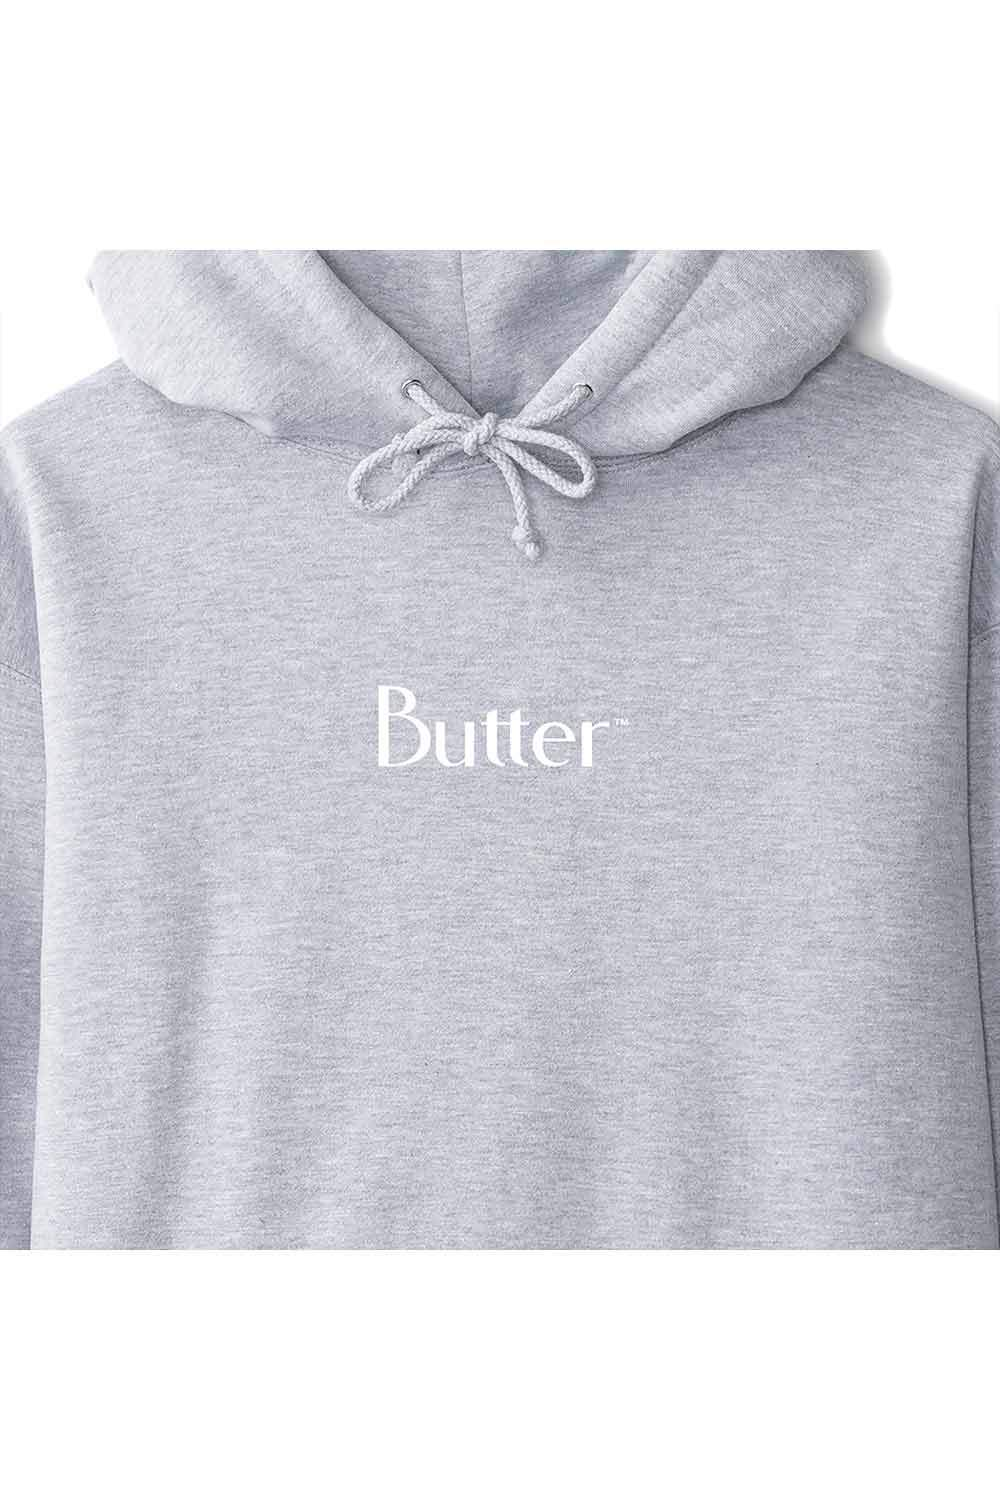 Butter Goods Puff Print Classic Logo Pullover - Heather Grey